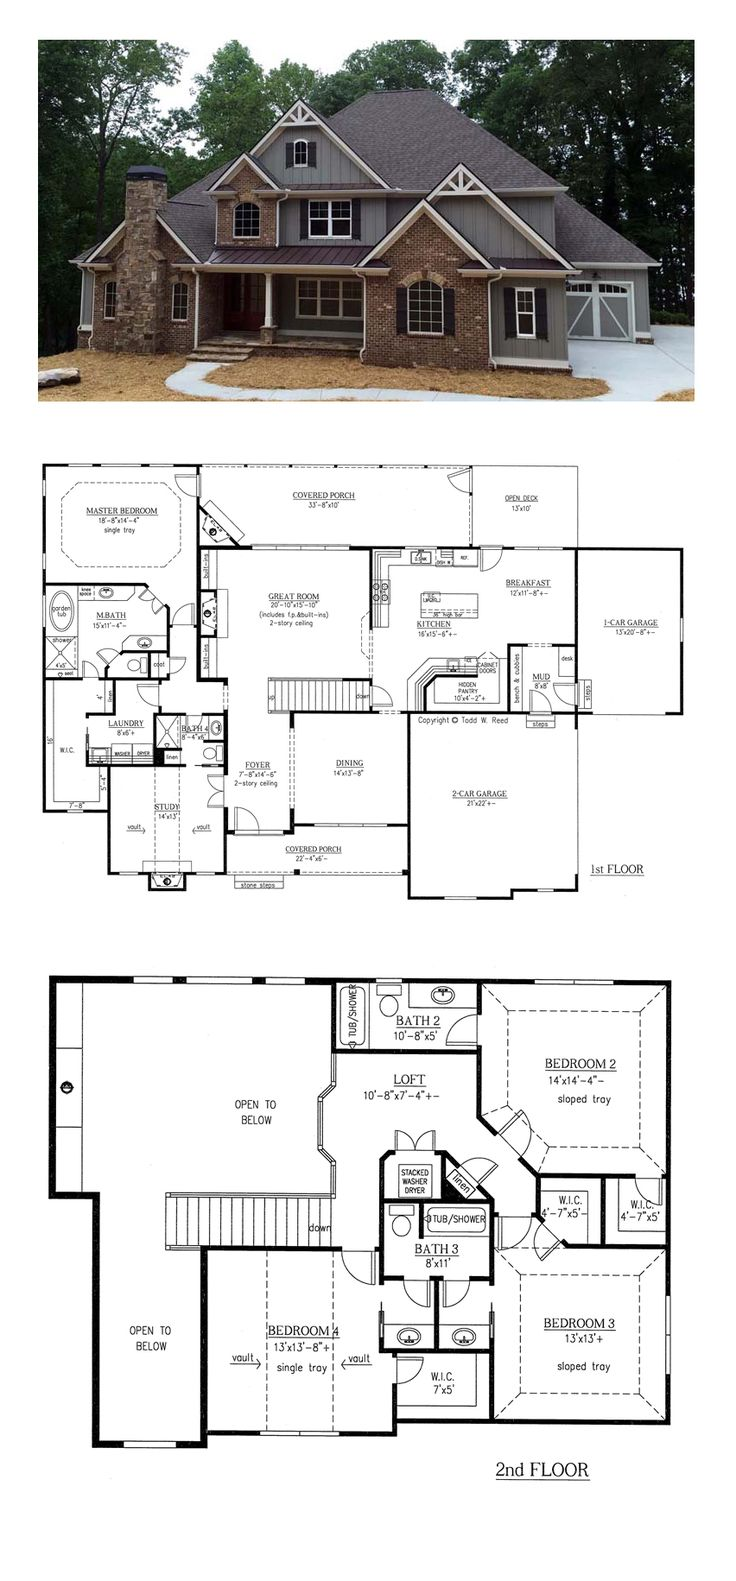 Best 25 dream house plans ideas on pinterest house for Two story house floor plans free